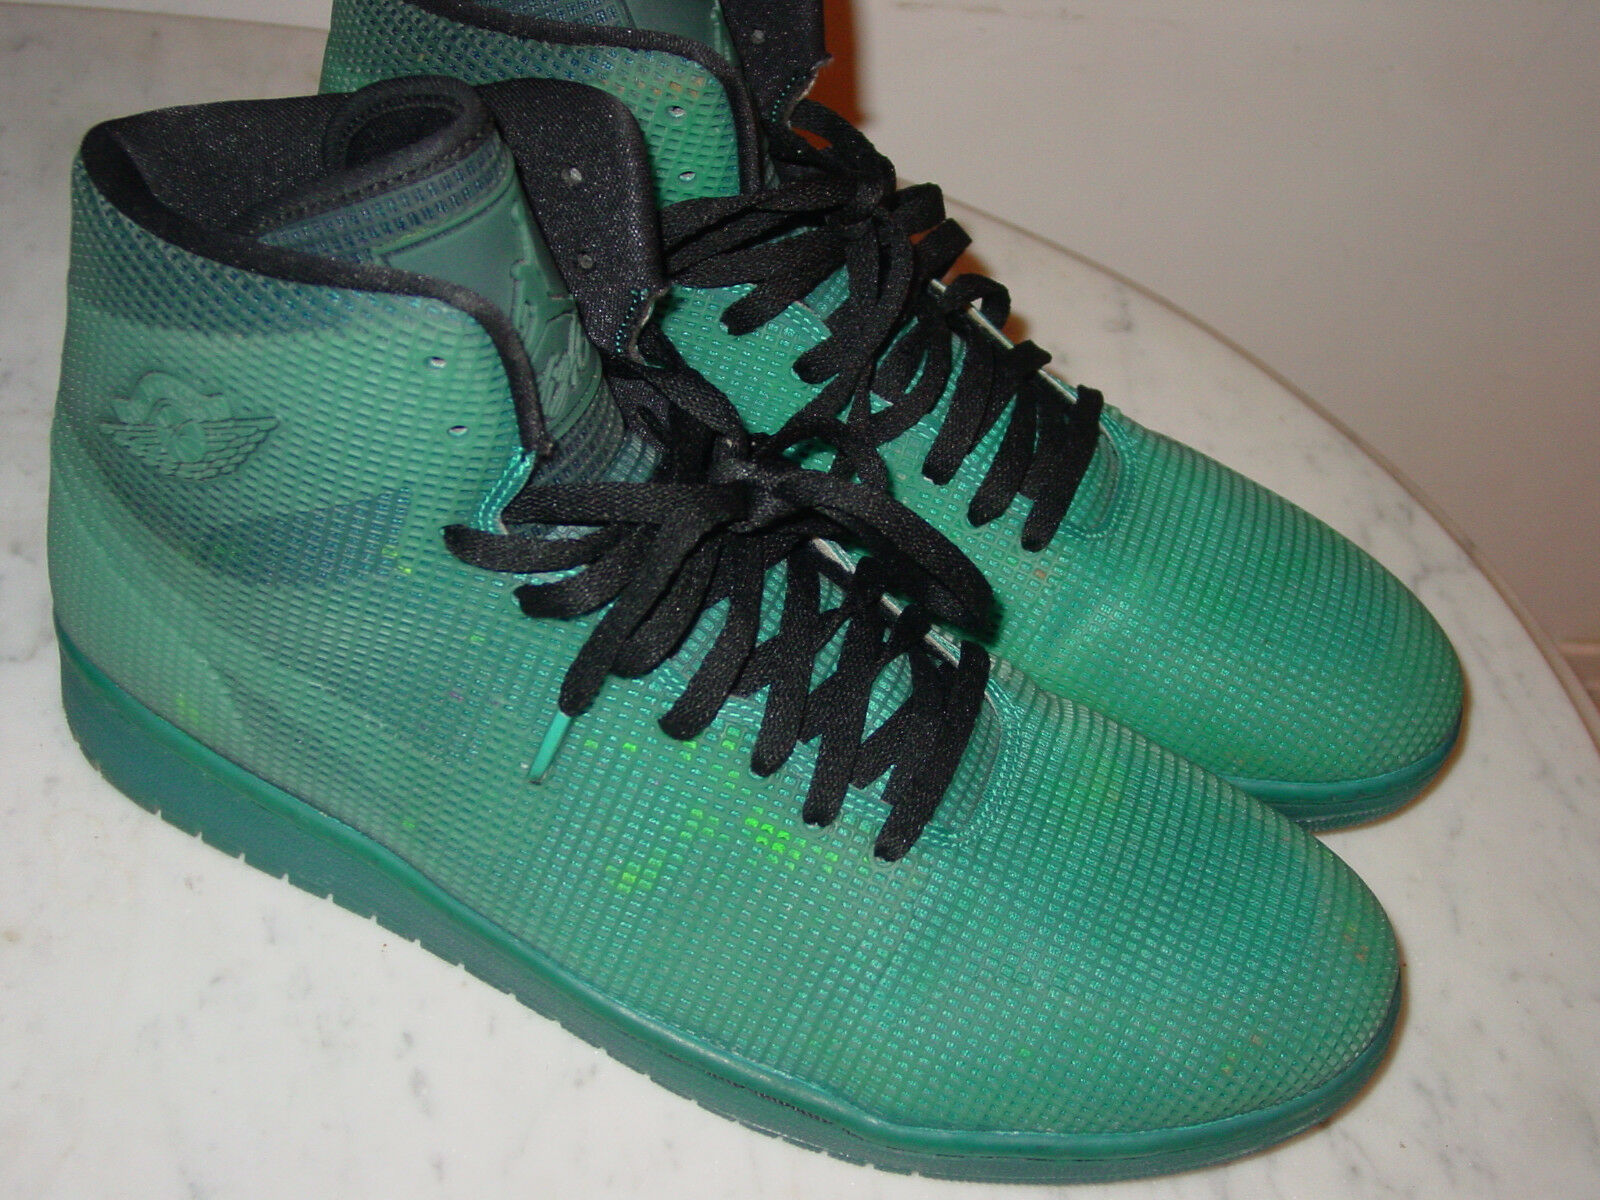 2014 Nike Teal Air Jordan 4LAB1 Black/Tropical Teal Nike Basketball Shoes! Size 15 220.00 61219d